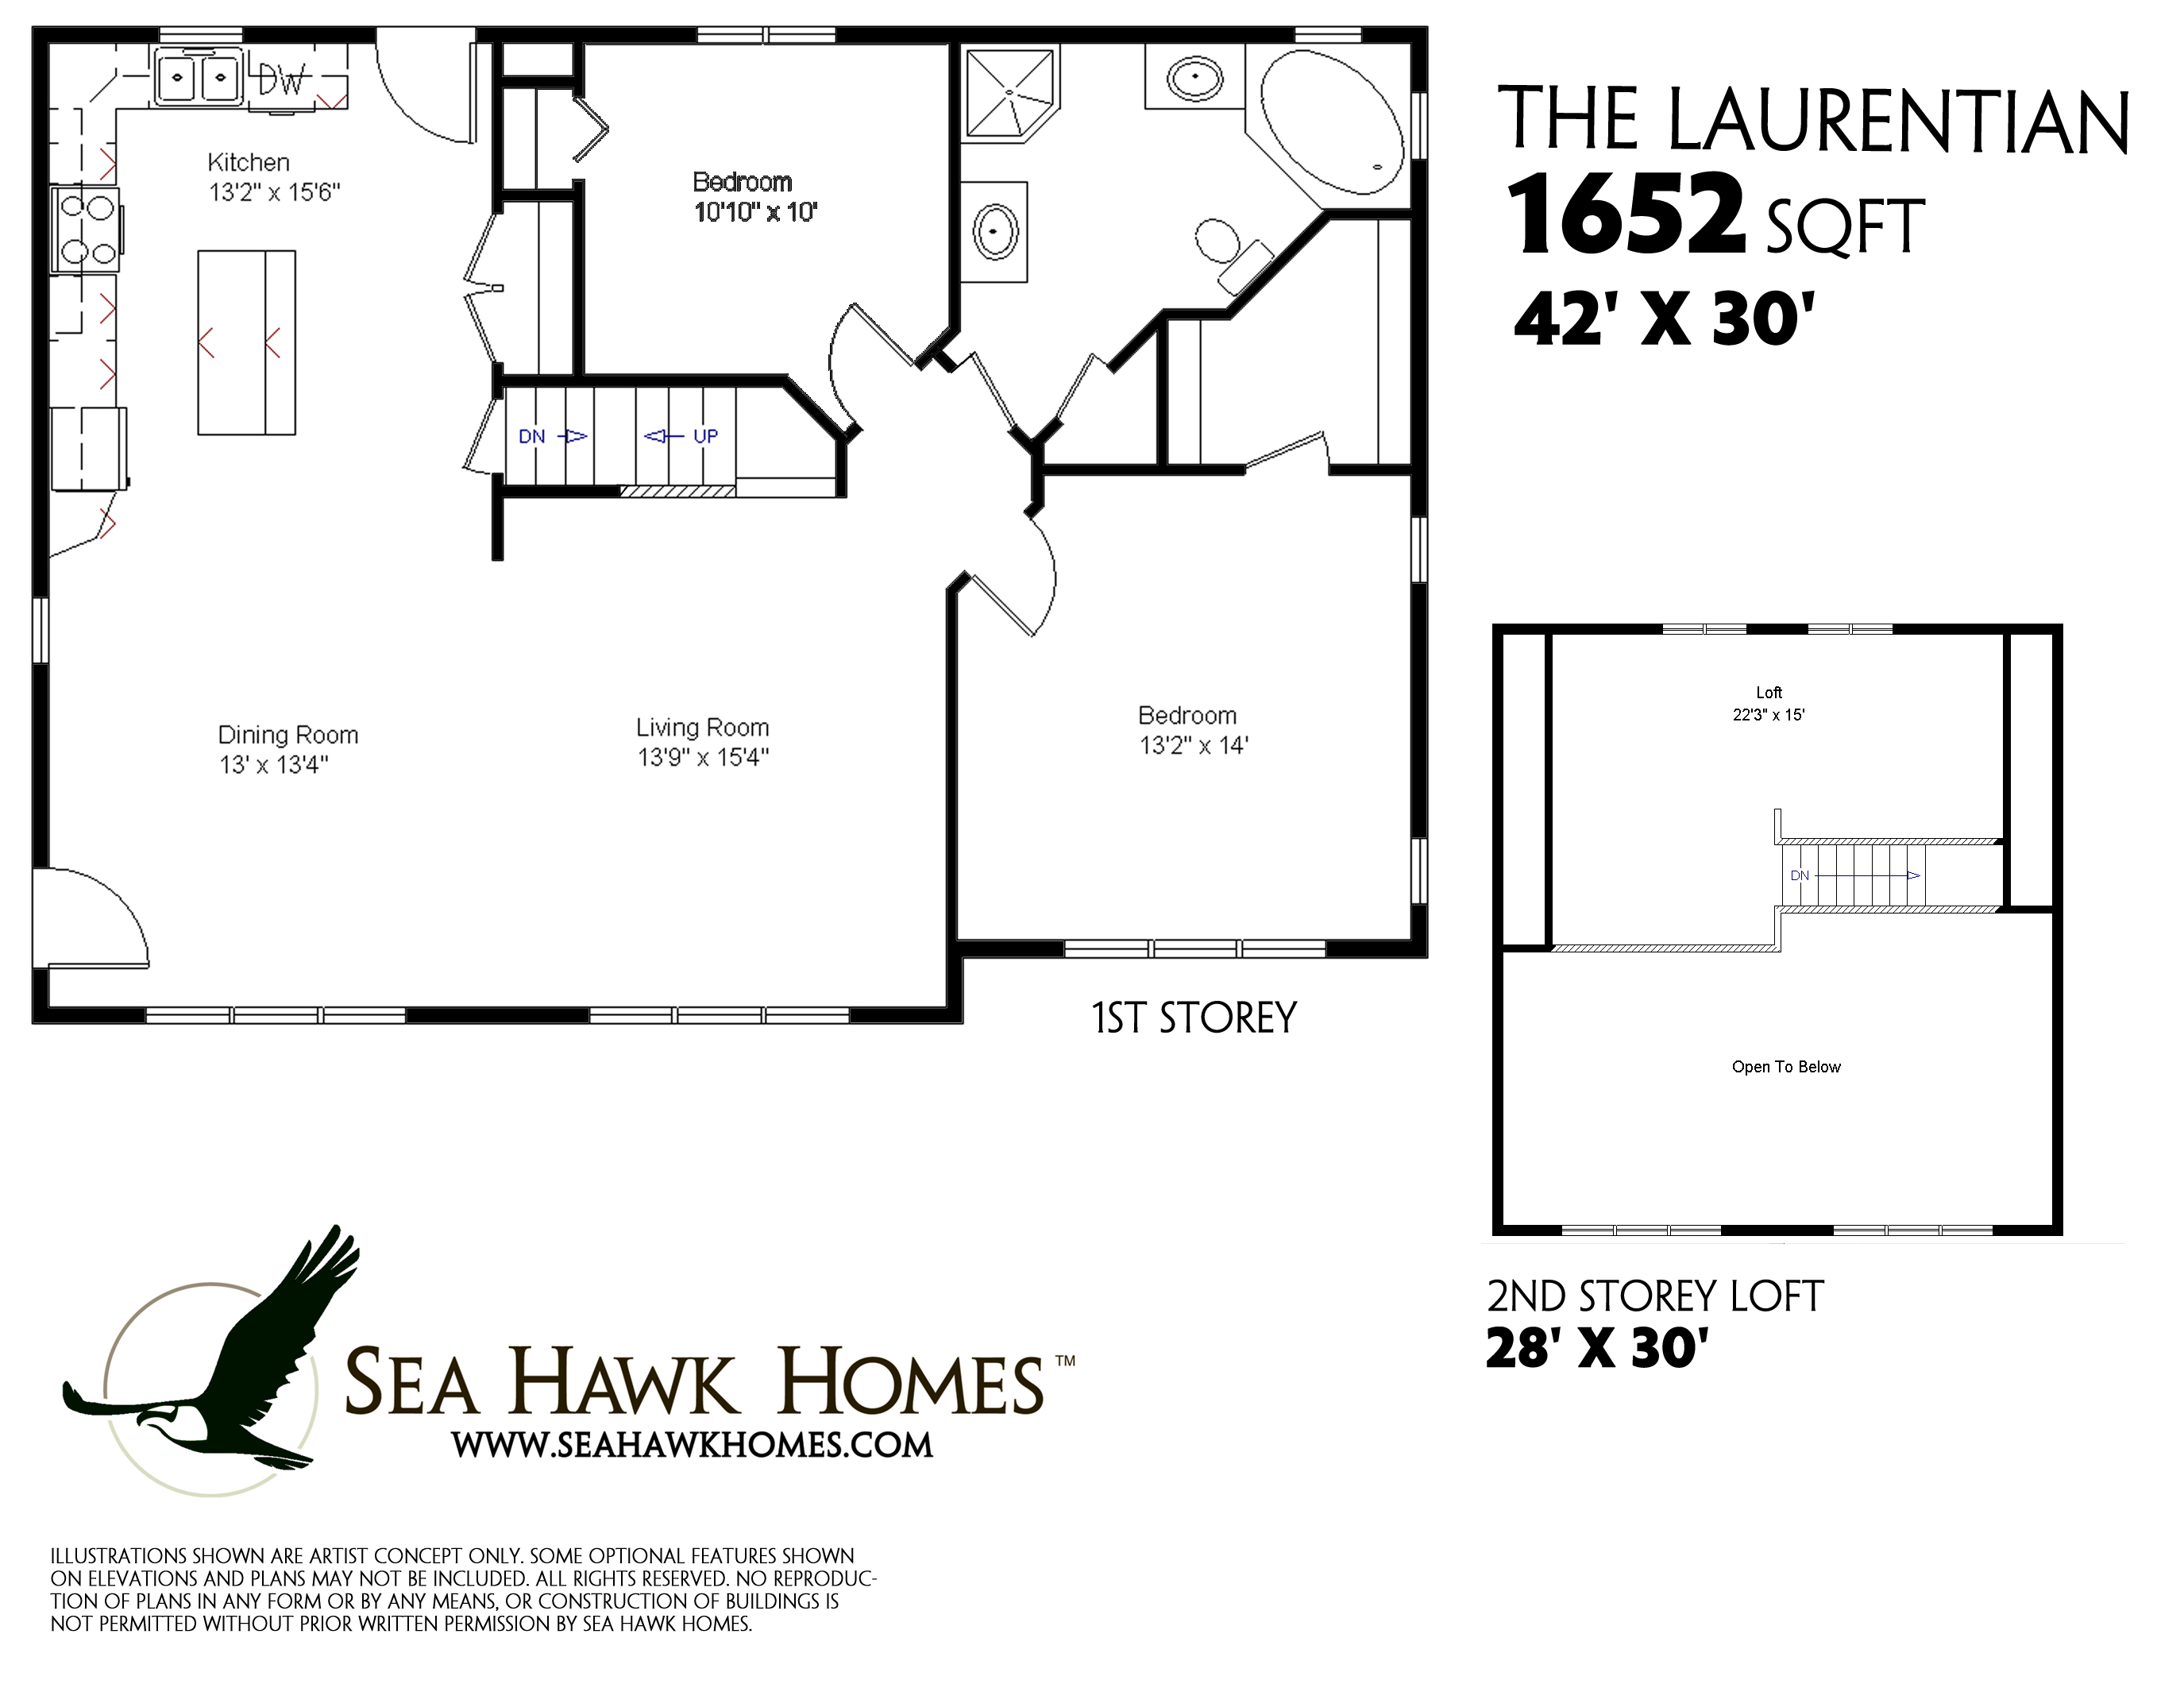 Laurentian Sea Hawk Homes